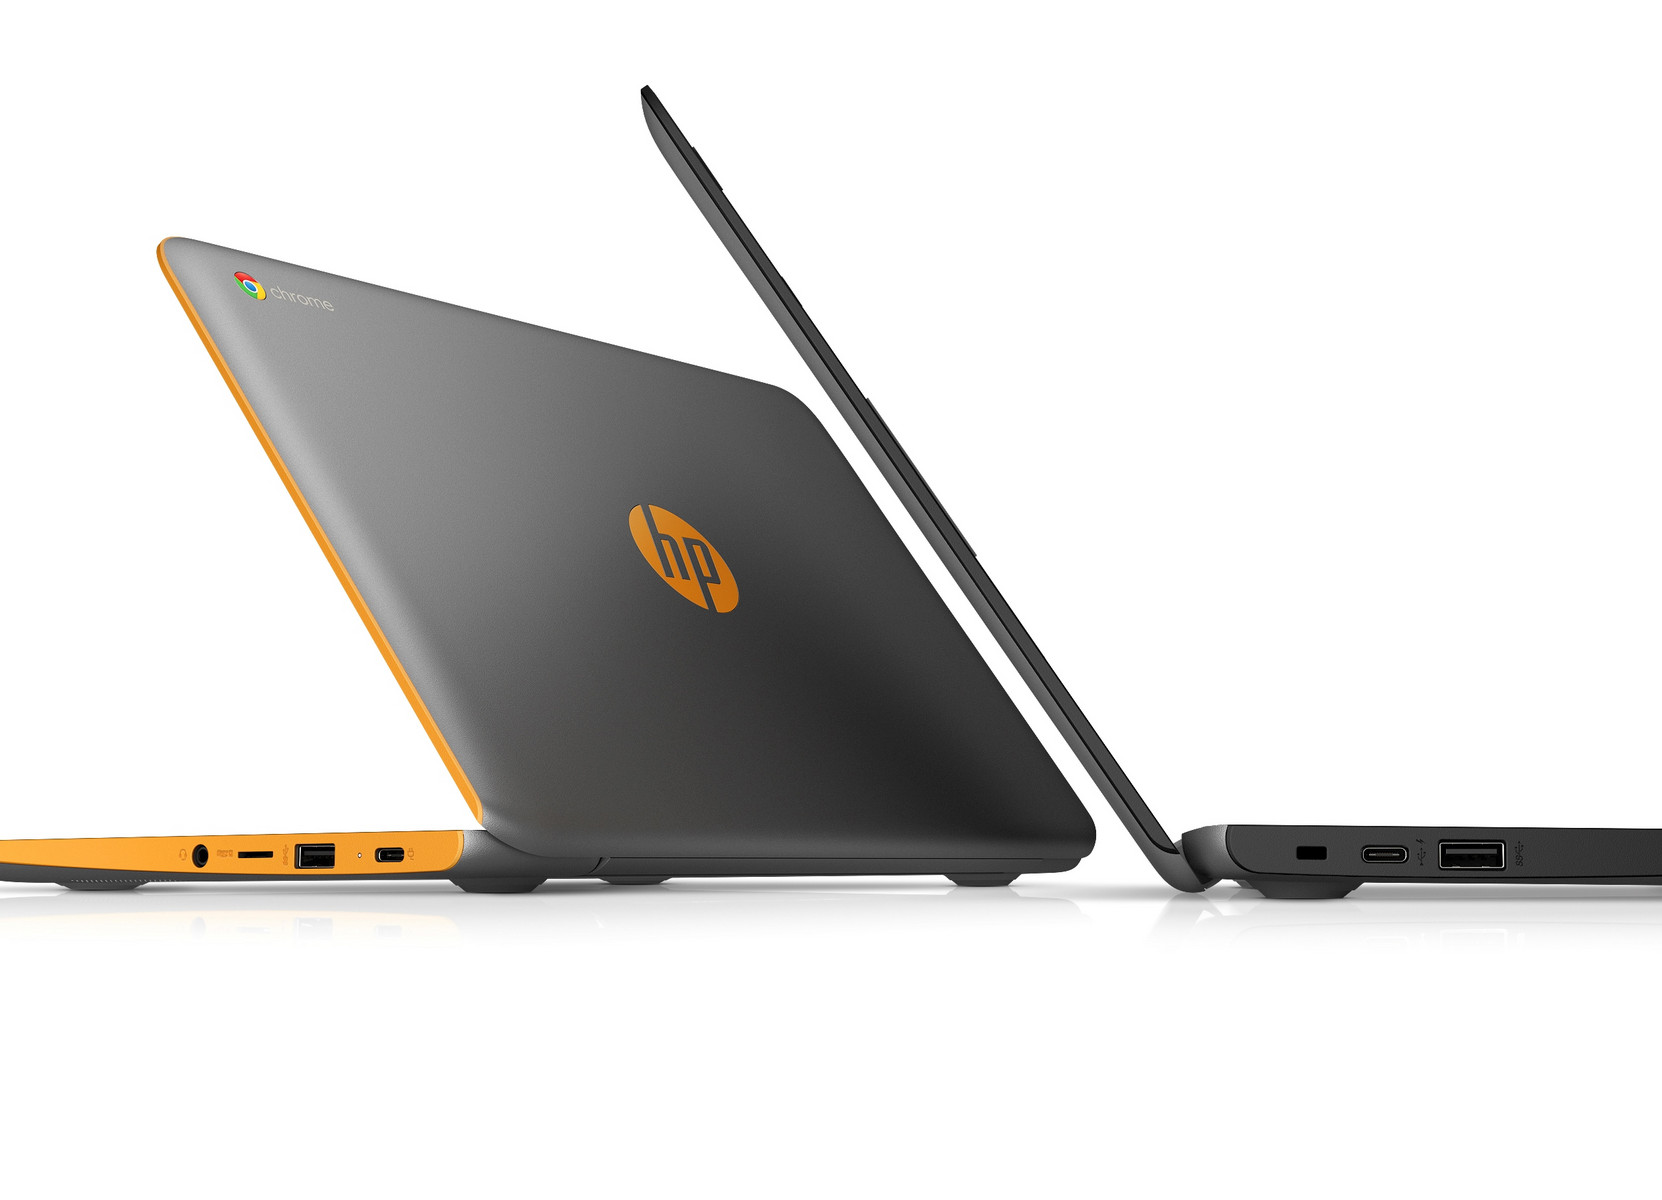 Hp Chromebook 11 G6 And 14 G5 Coming With Mil Std Charger Android Certified Designs